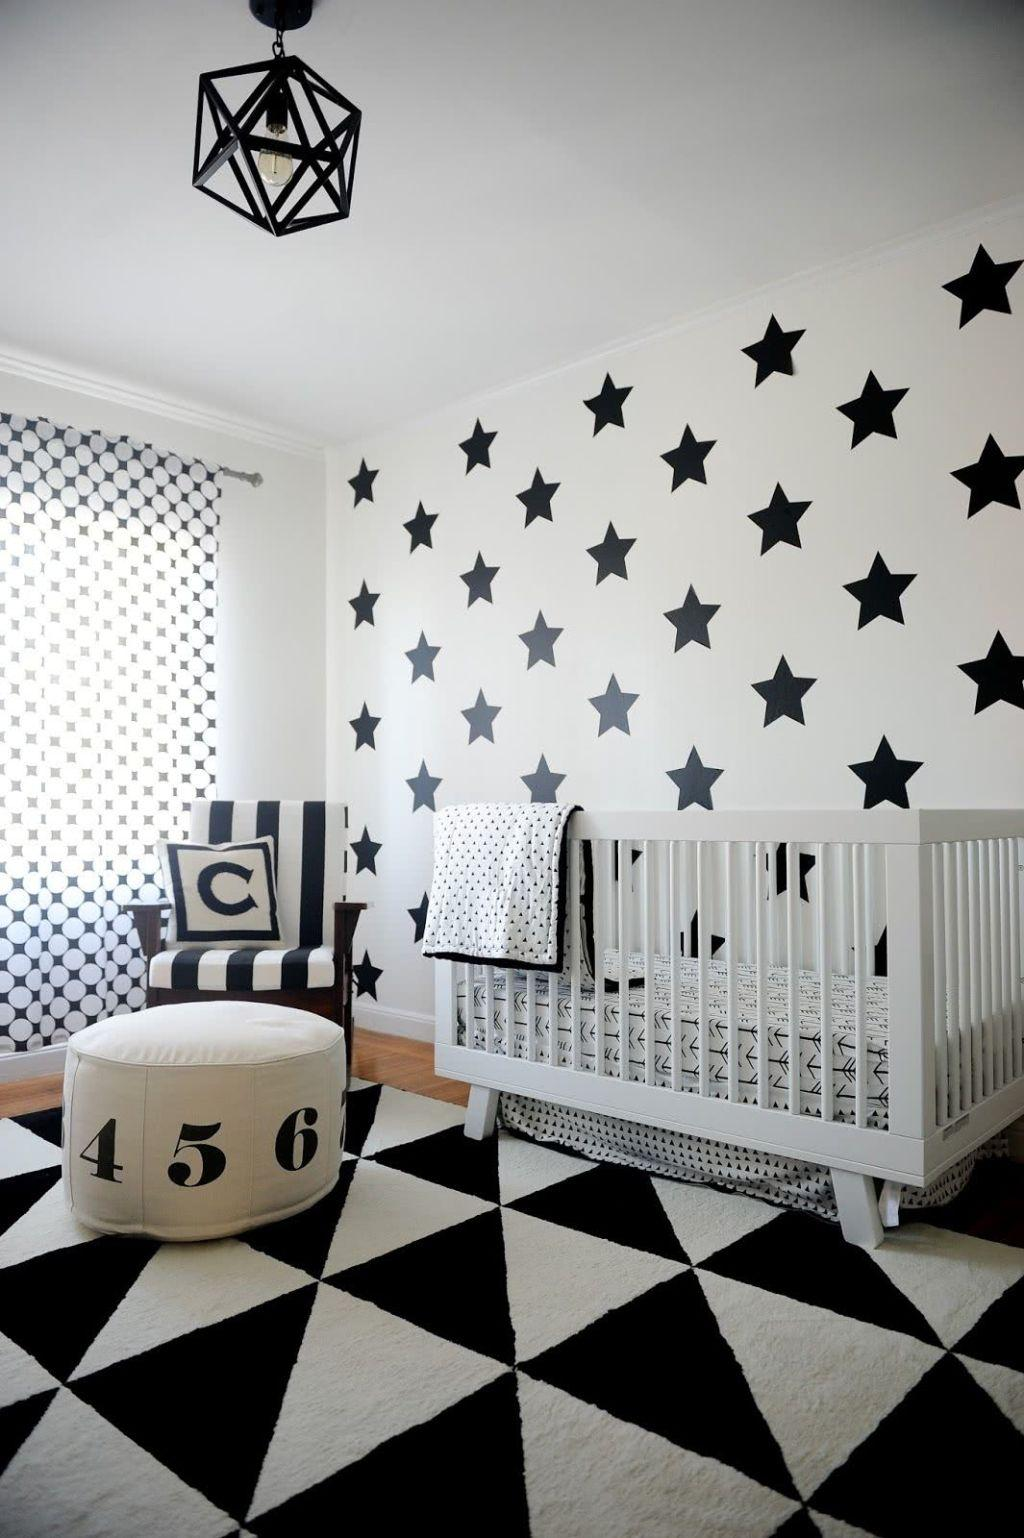 Black and white decoration: 60 ideas of environments to be inspired 46